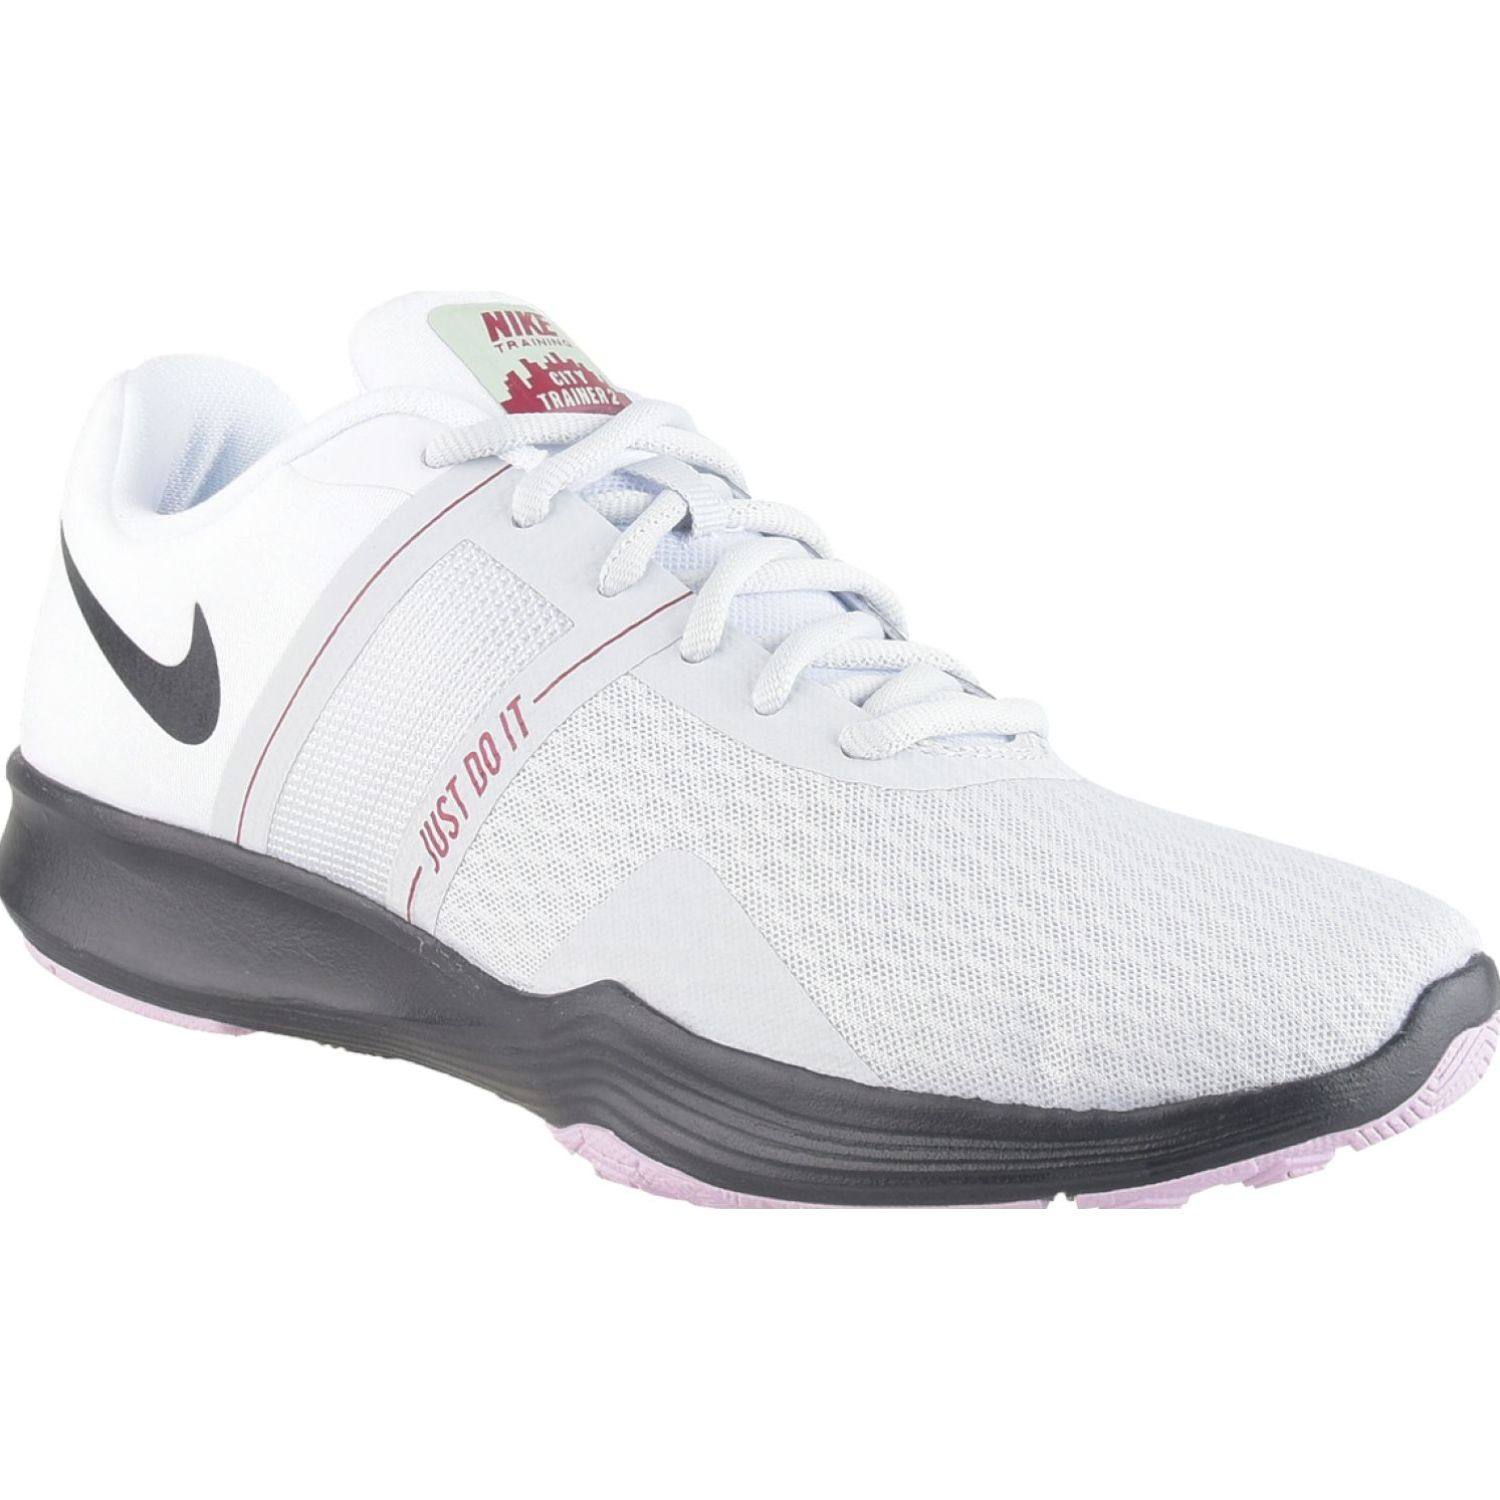 Nike Wmns Nike City Trainer 2 Gris / blanco Mujeres